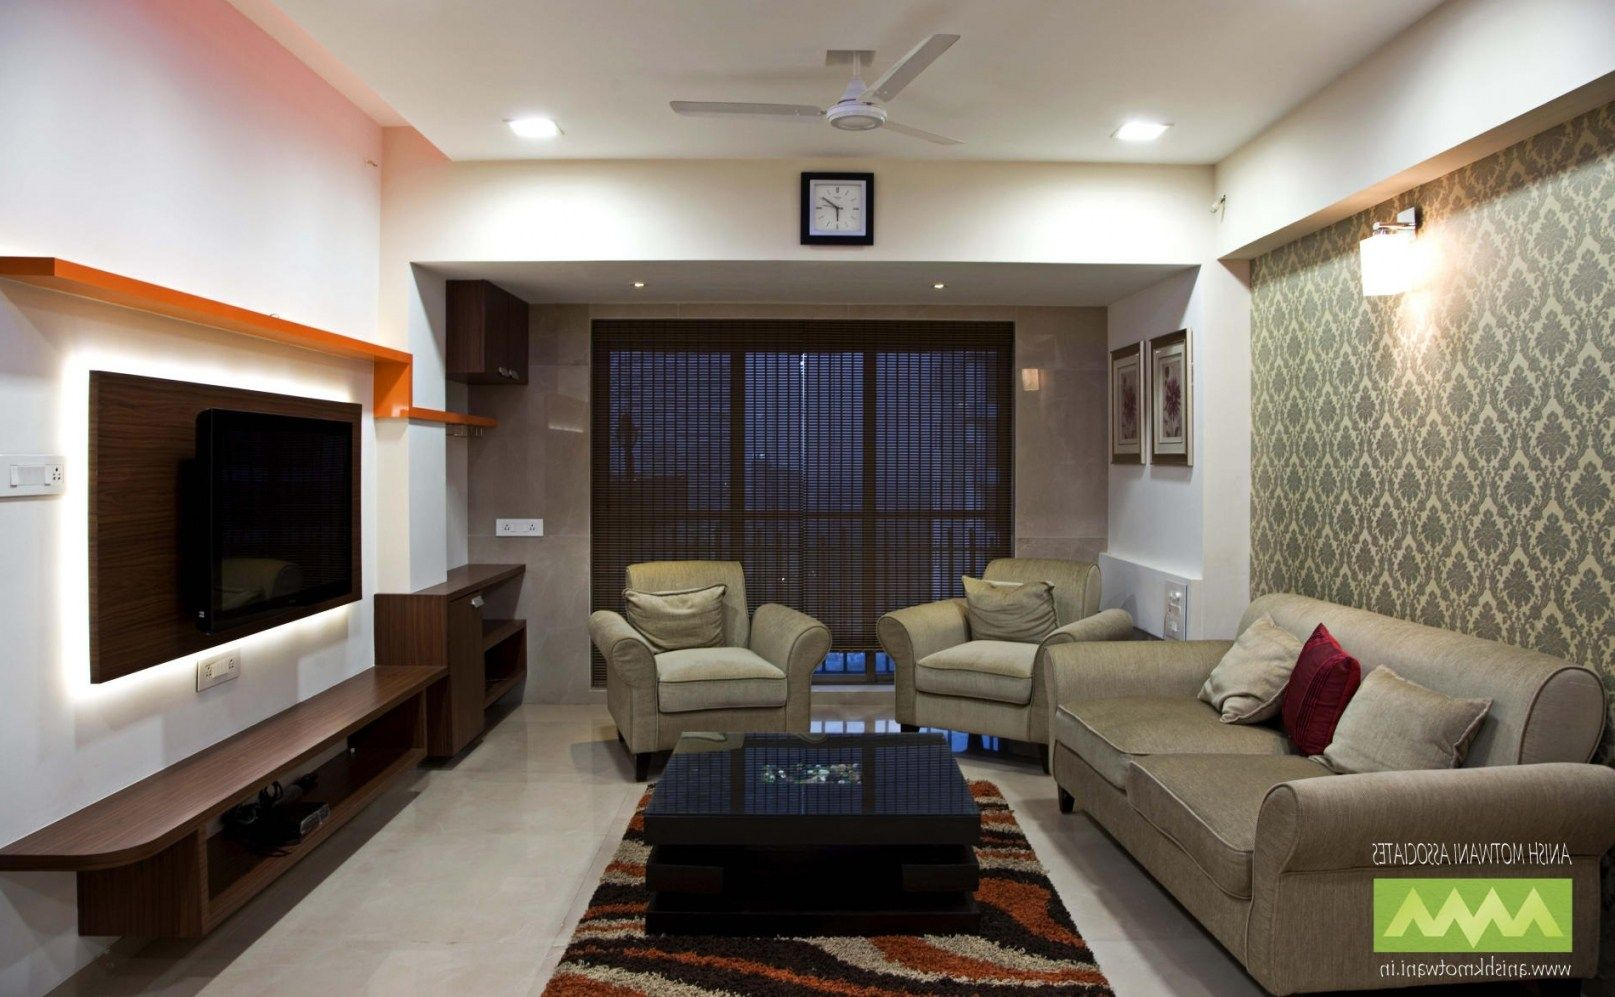 Top 10 Interior Design Small Living Room India Top 10 Interior Design Small Living Room India Home Sugary Home There Are No Other Words To Describe It The B